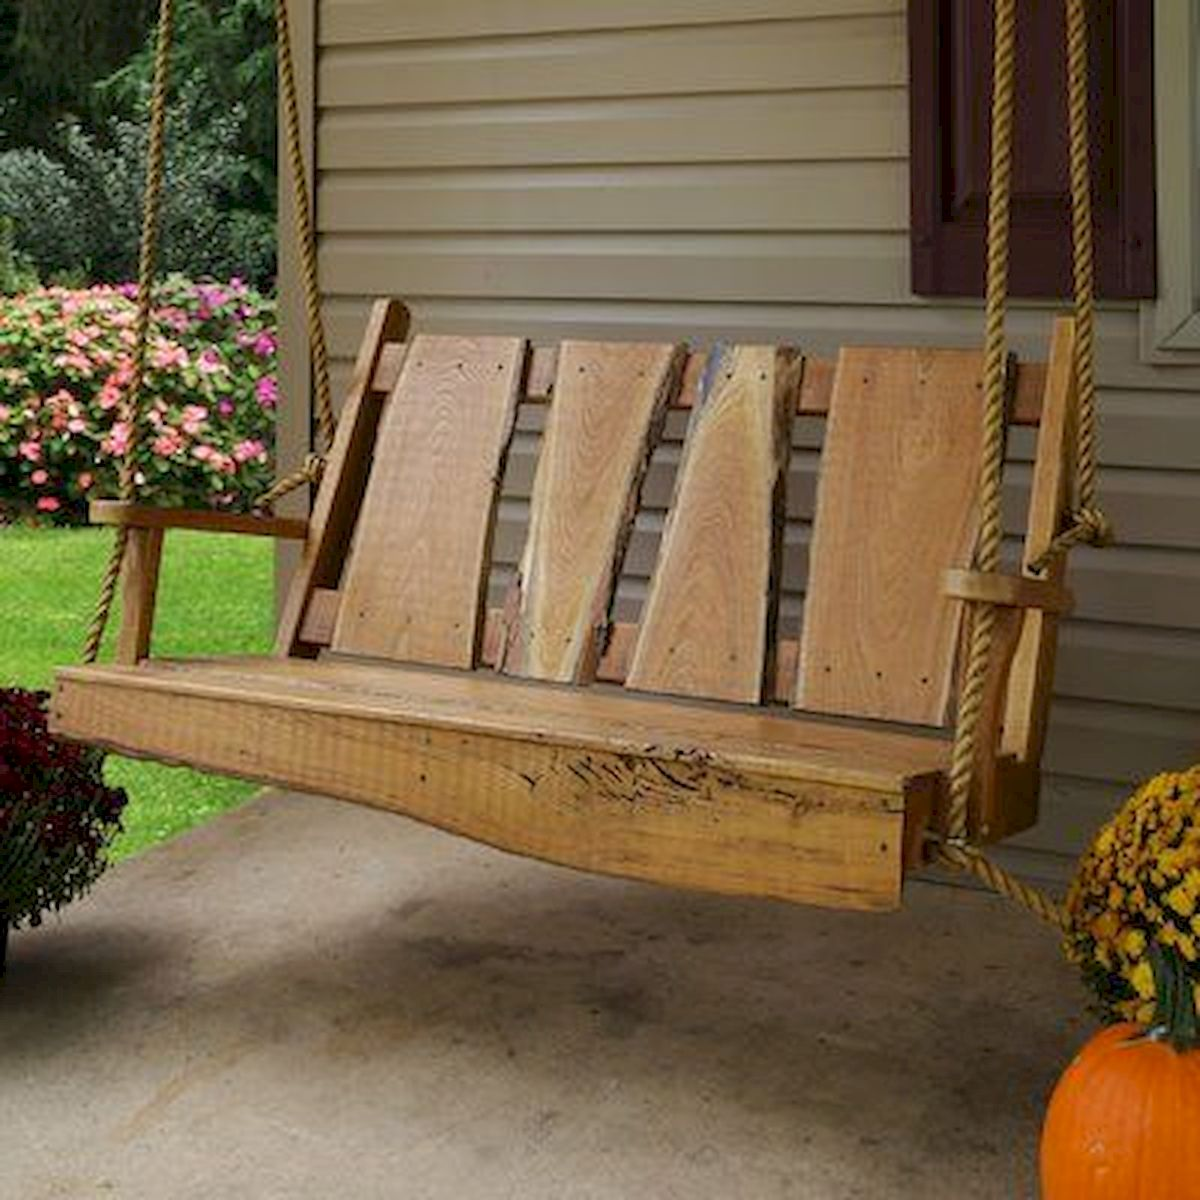 30 Fantastic DIY Wooden Pallet Swing Chair Ideas (9)